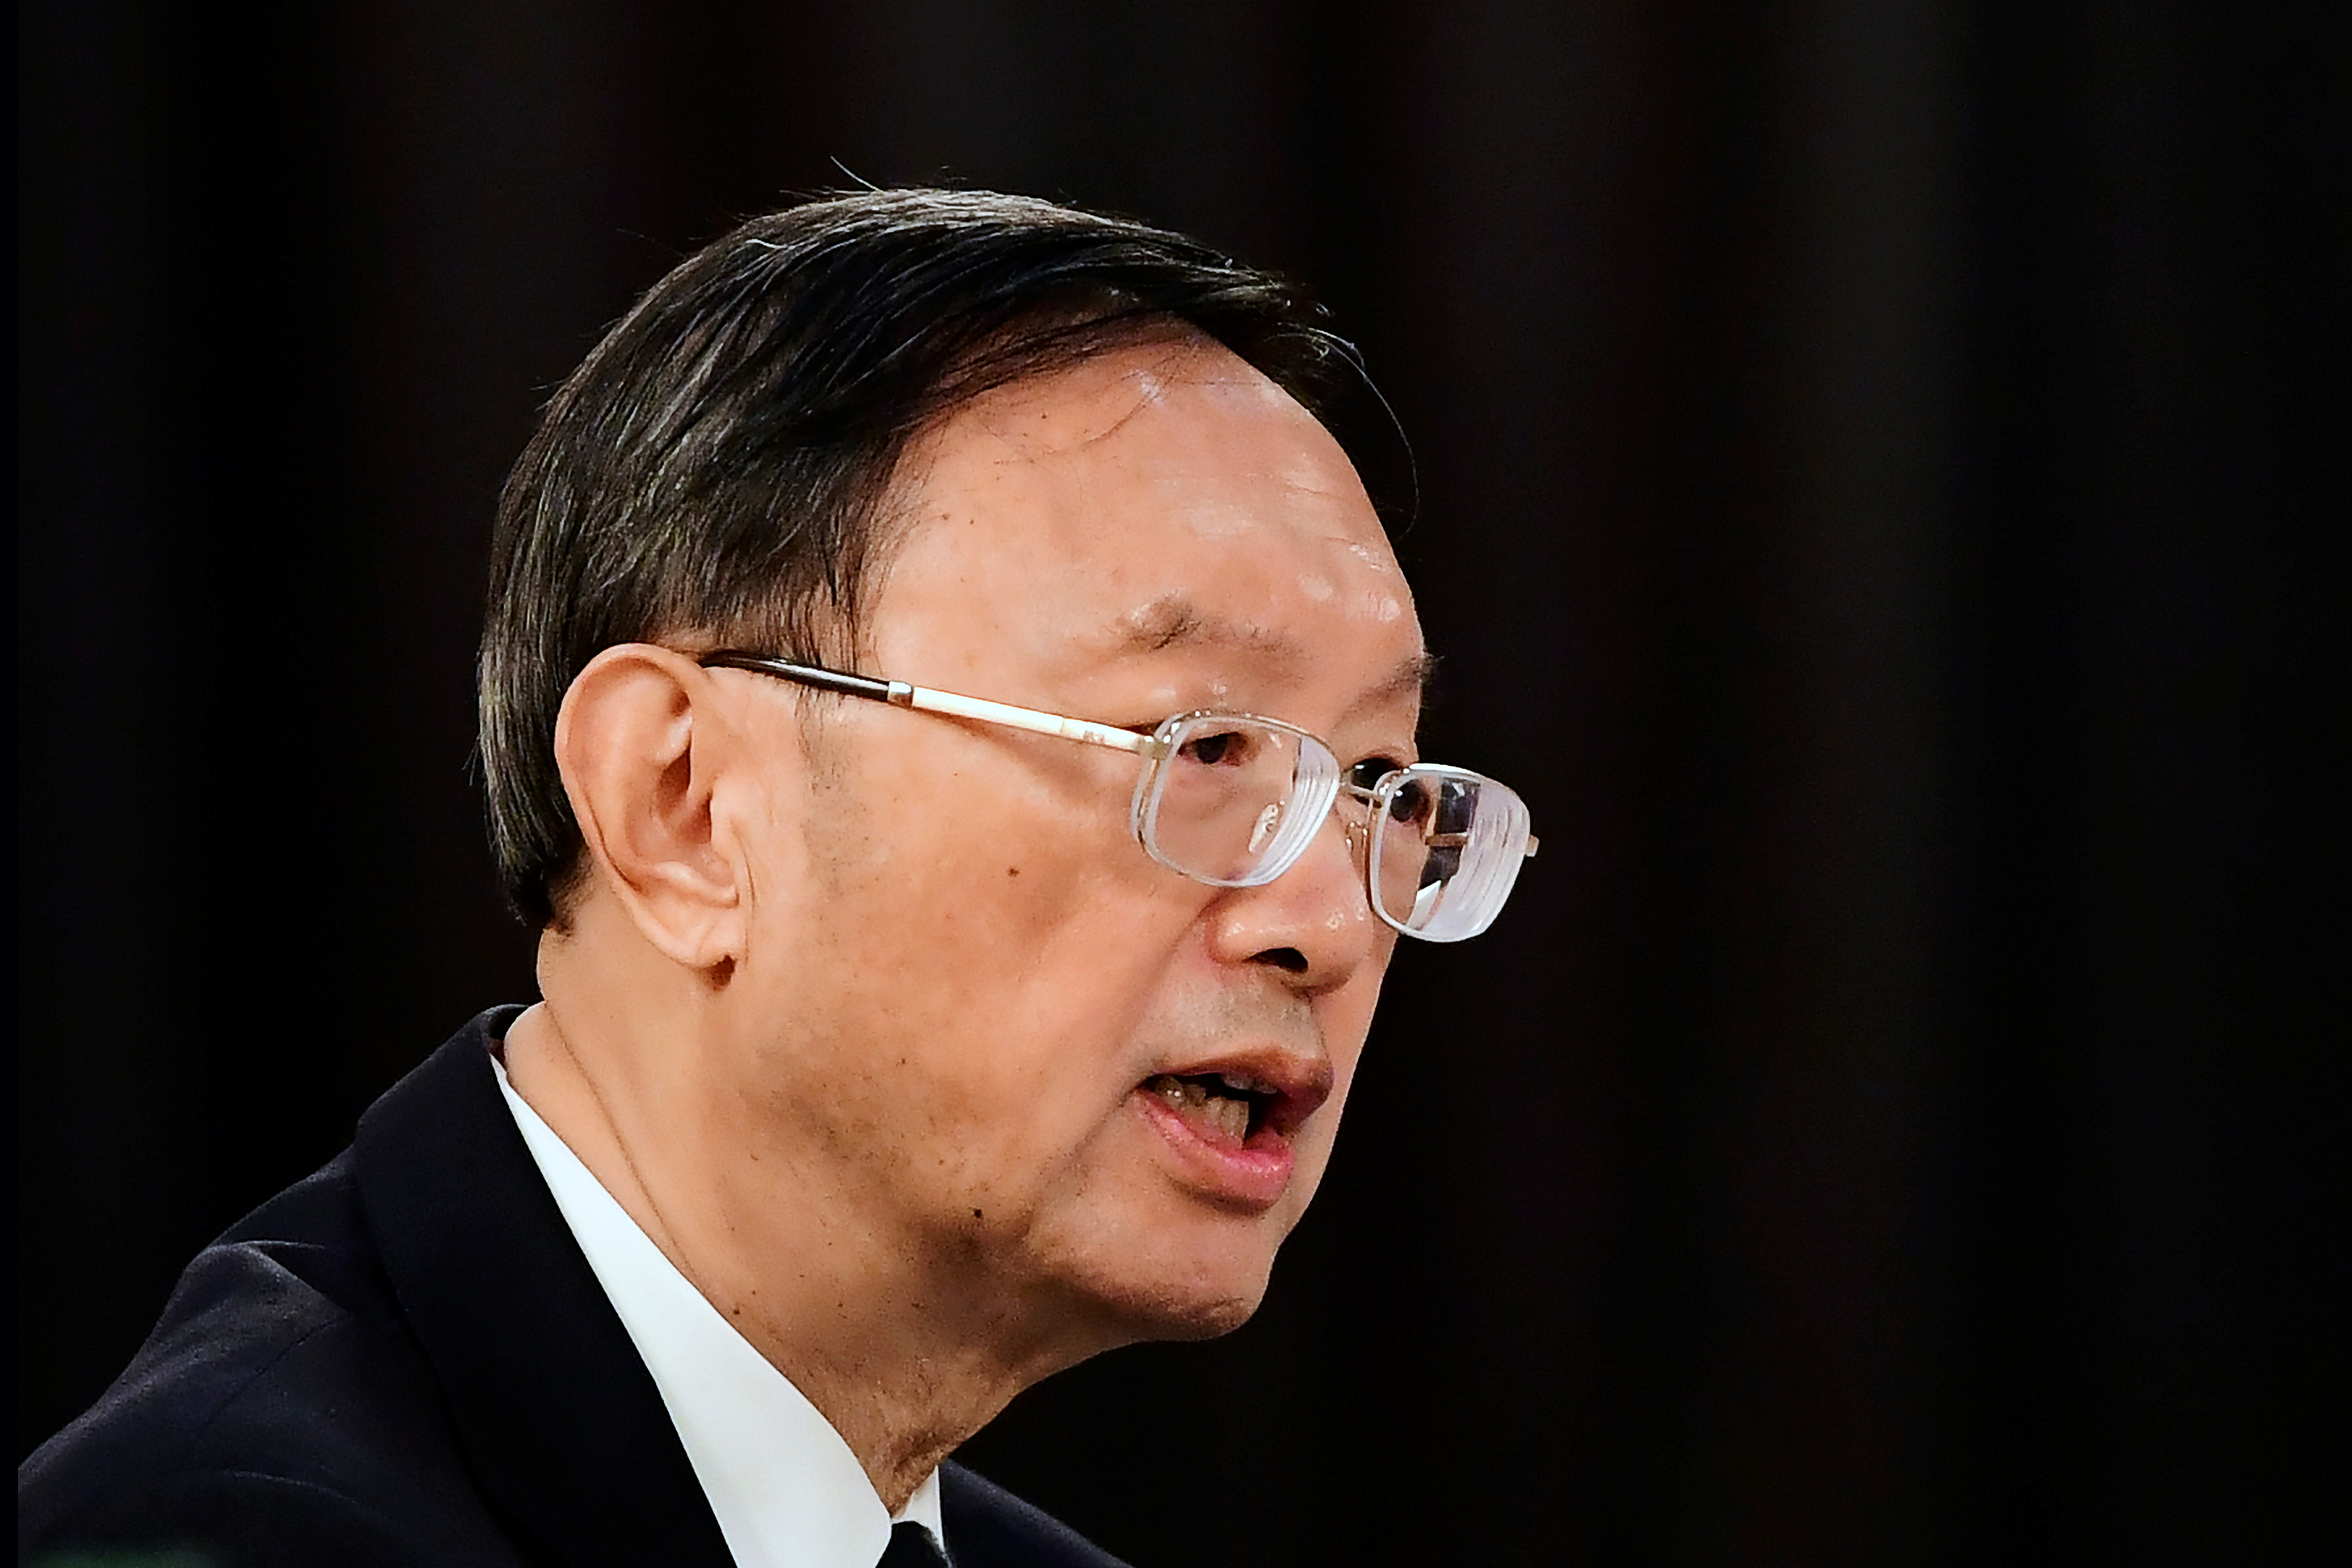 Yang Jiechi, director of the Central Foreign Affairs Commission Office for China, addresses the U.S. delegation at the opening session of U.S.-China talks at the Captain Cook Hotel in Anchorage, Alaska, U.S. March 18, 2021. Frederic J. Brown/Pool via REUTERS